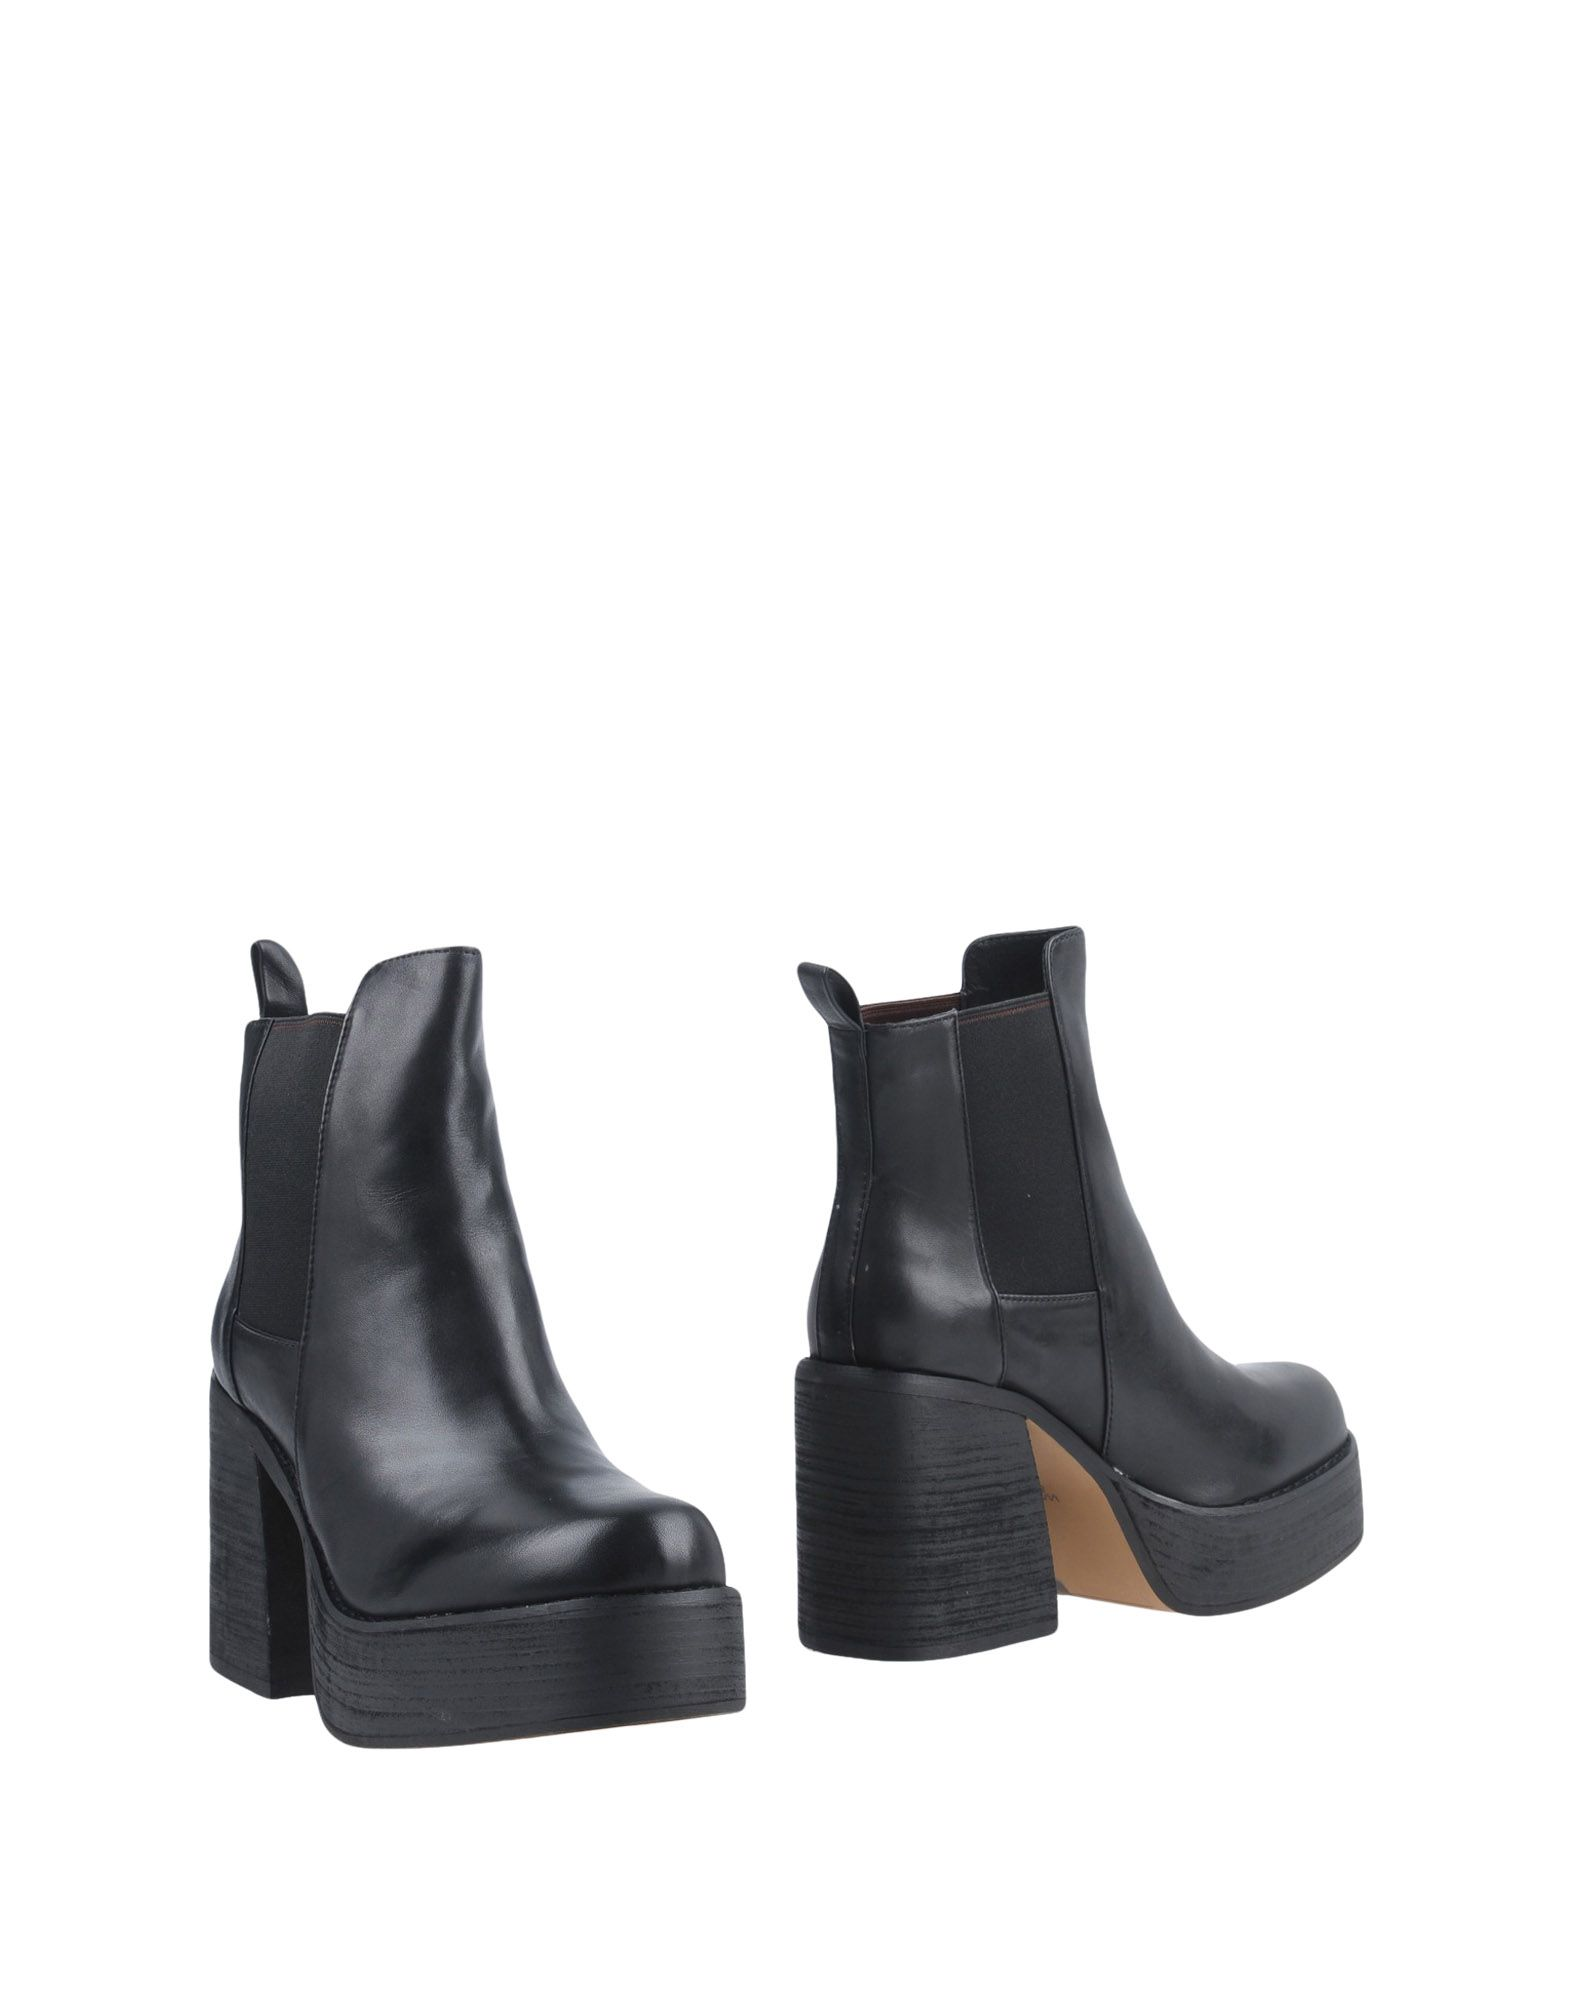 Windsor Smith Ankle Boot Ankle - Women Windsor Smith Ankle Boot Boots online on  Australia - 11318202KU 15d428